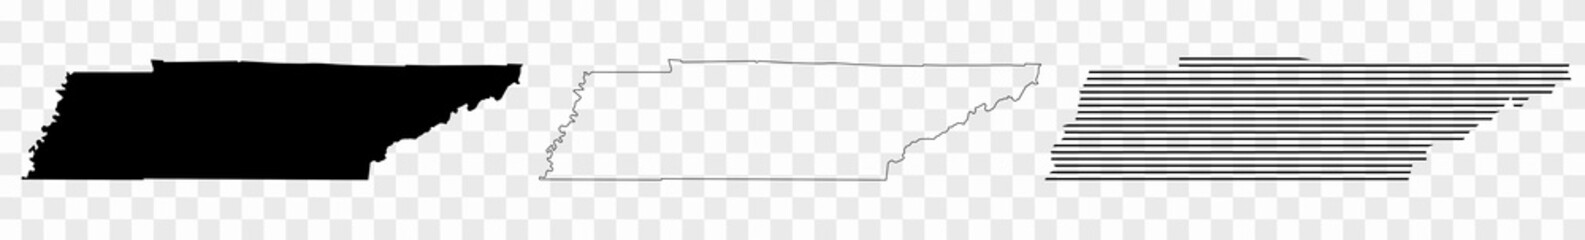 Tennessee Map Black | State Border | United States | US America | Transparent Isolated | Variations